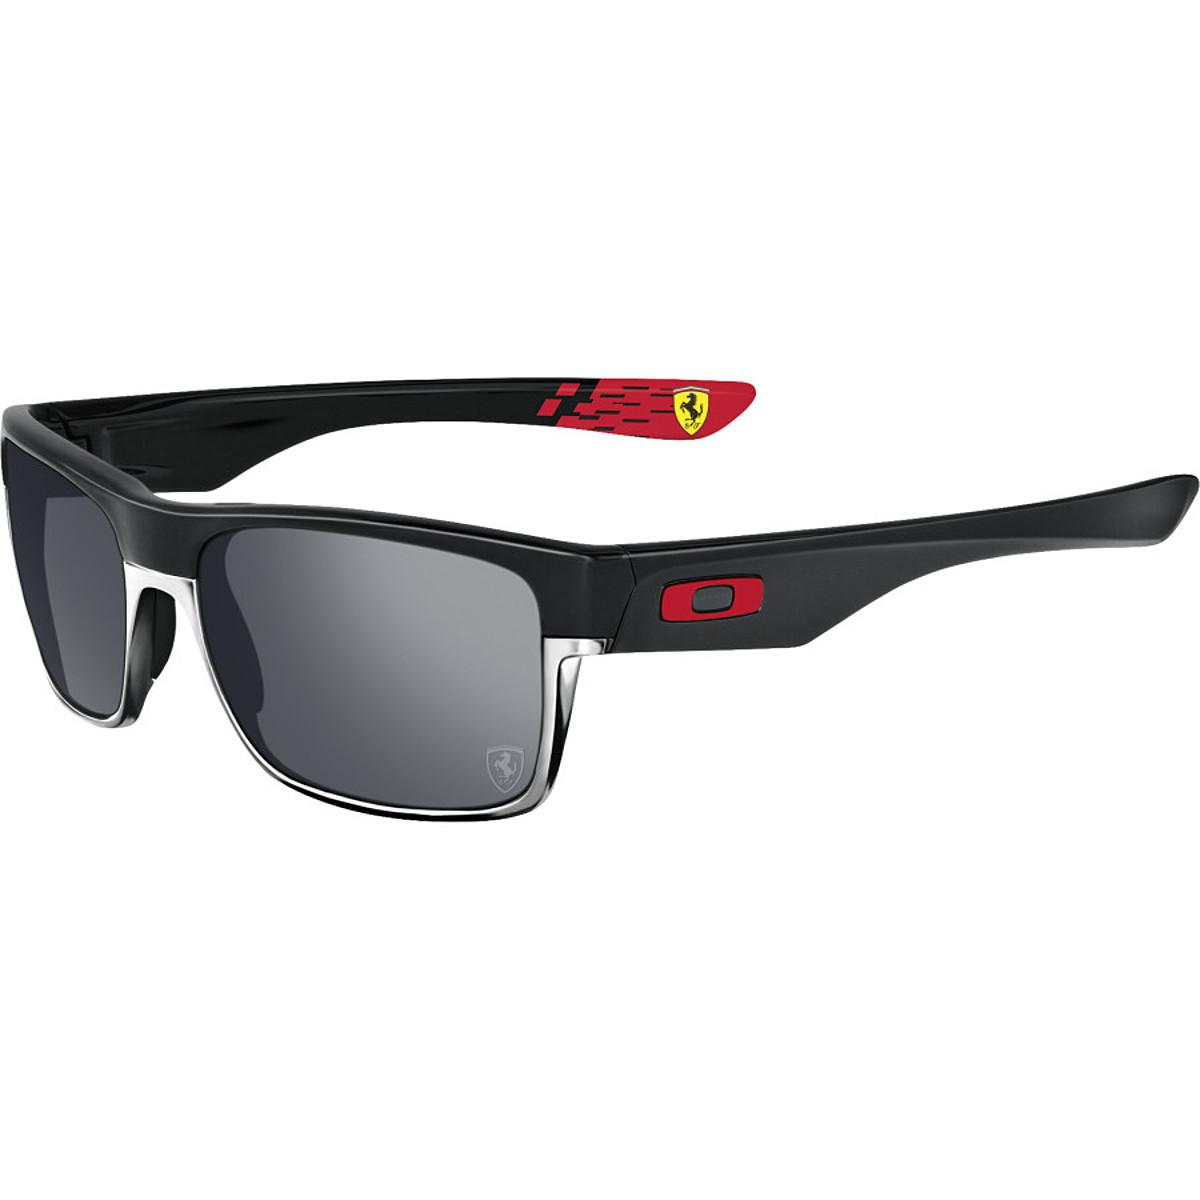 e20e913553 Lyst - Oakley Limited Edition Ferrari Twoface Sunglasses in Black ...